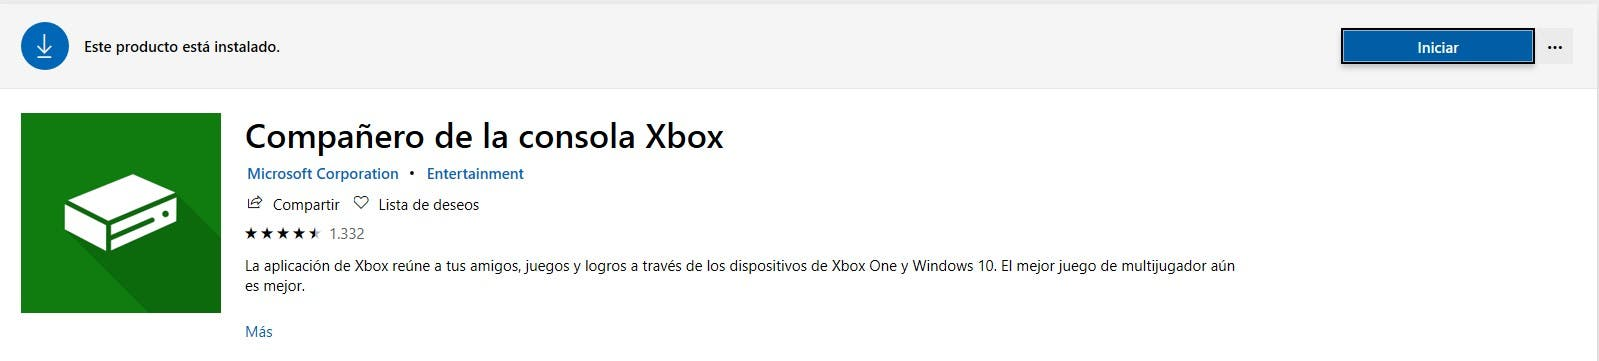 La App de Xbox en Windows 10 cambia de nombre 2